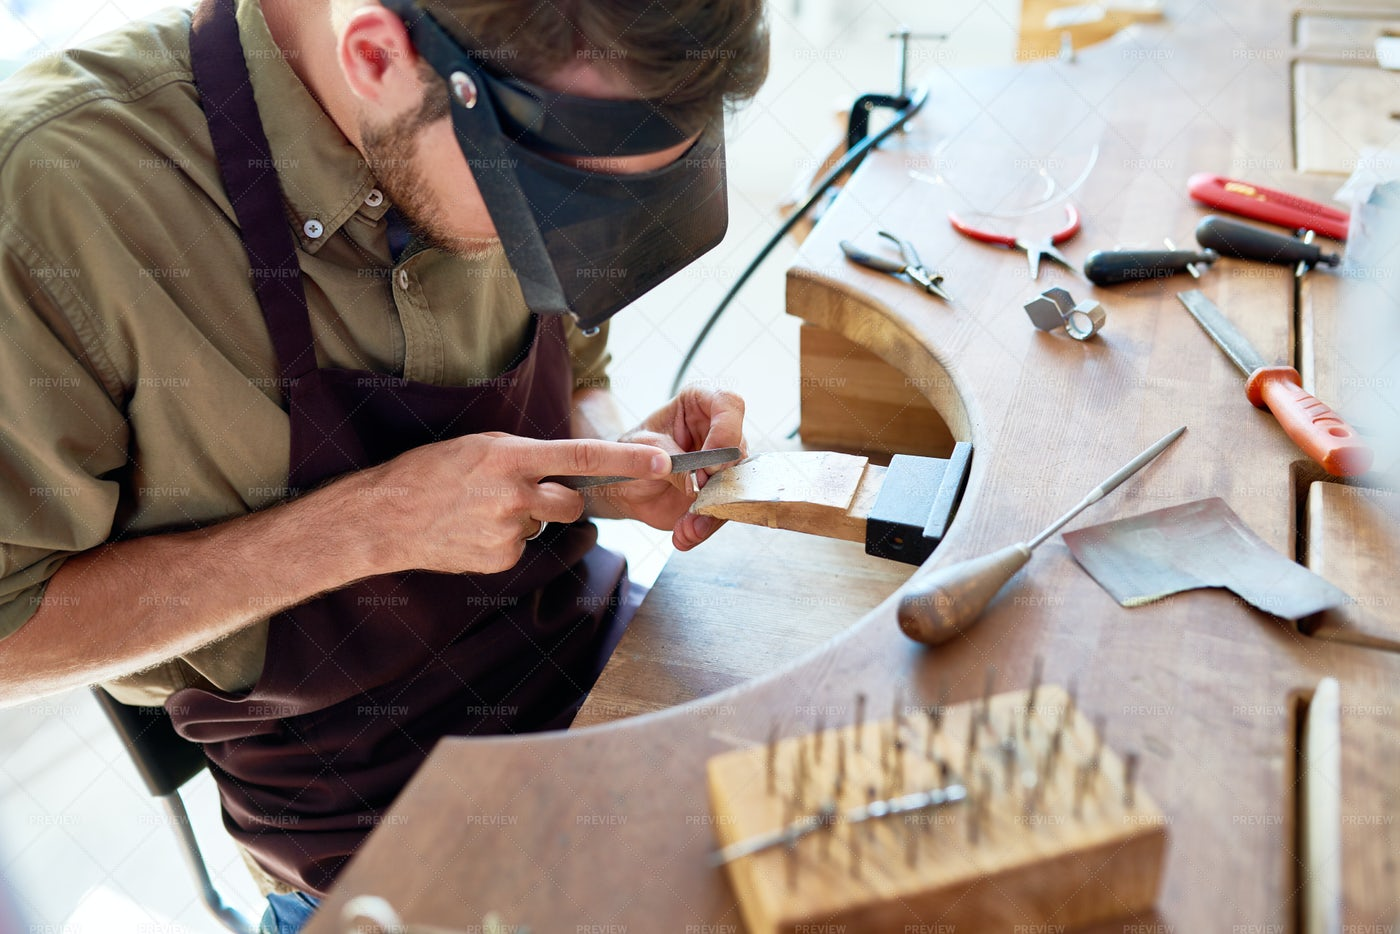 Jeweler Making Rings: Stock Photos